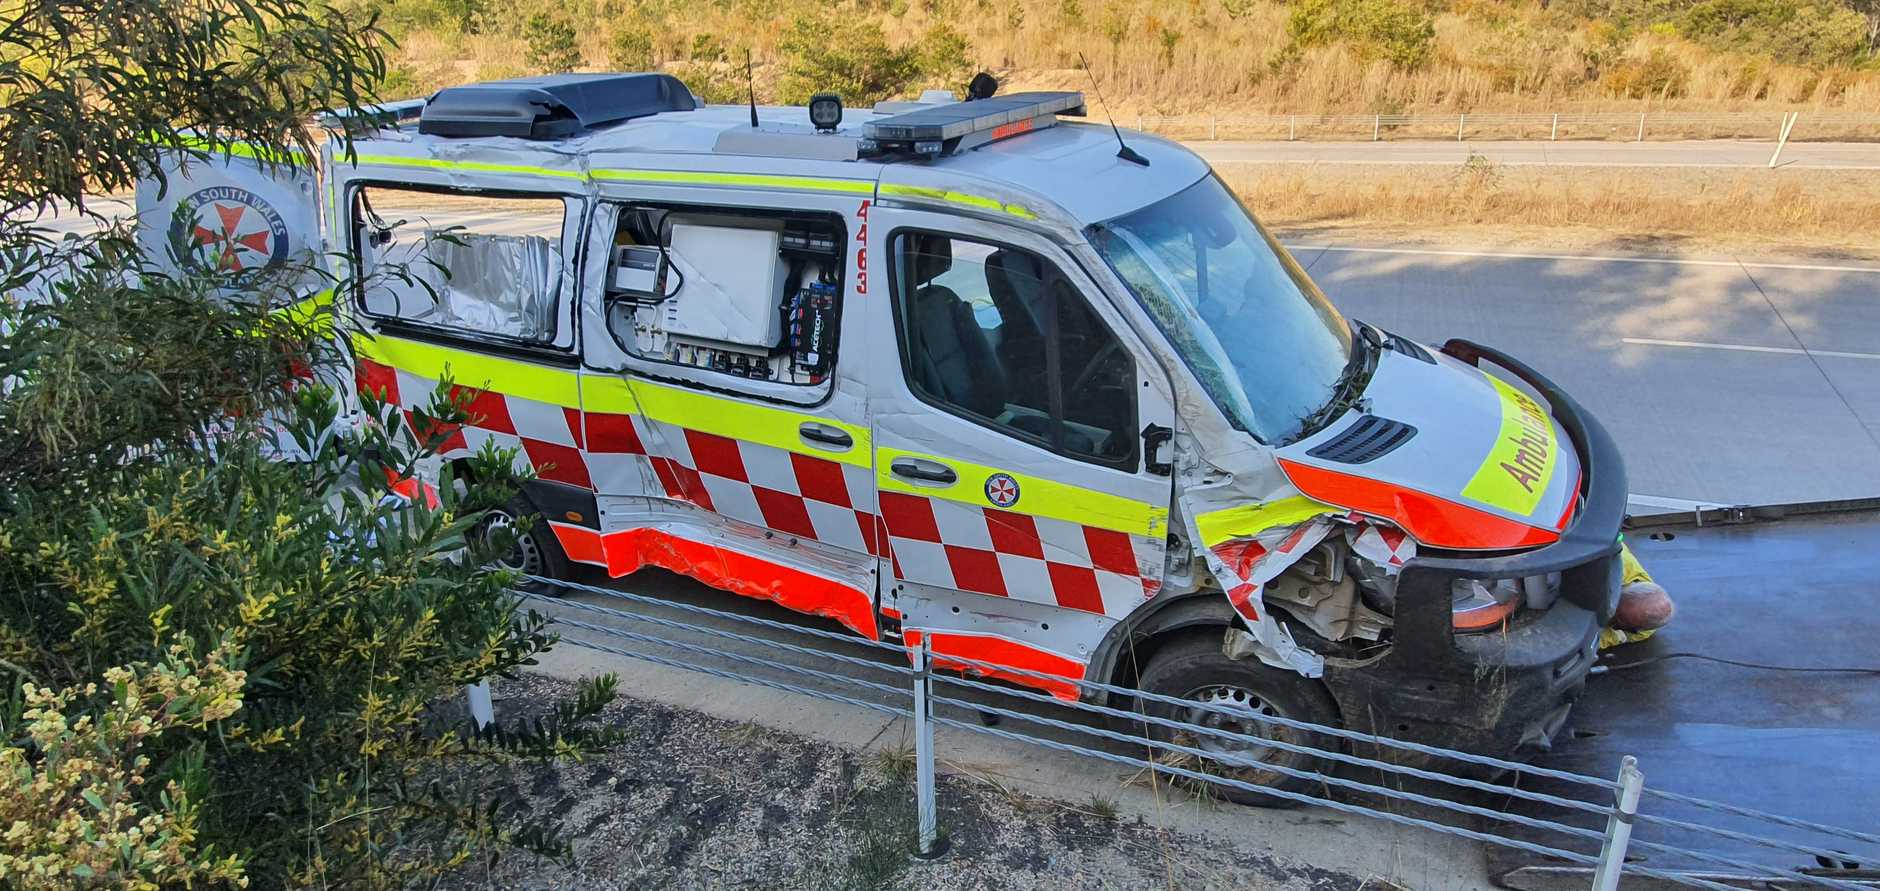 A mother, her baby and a paramedic who were inside the ambulance when it crashed at high speed have been hospitalised.